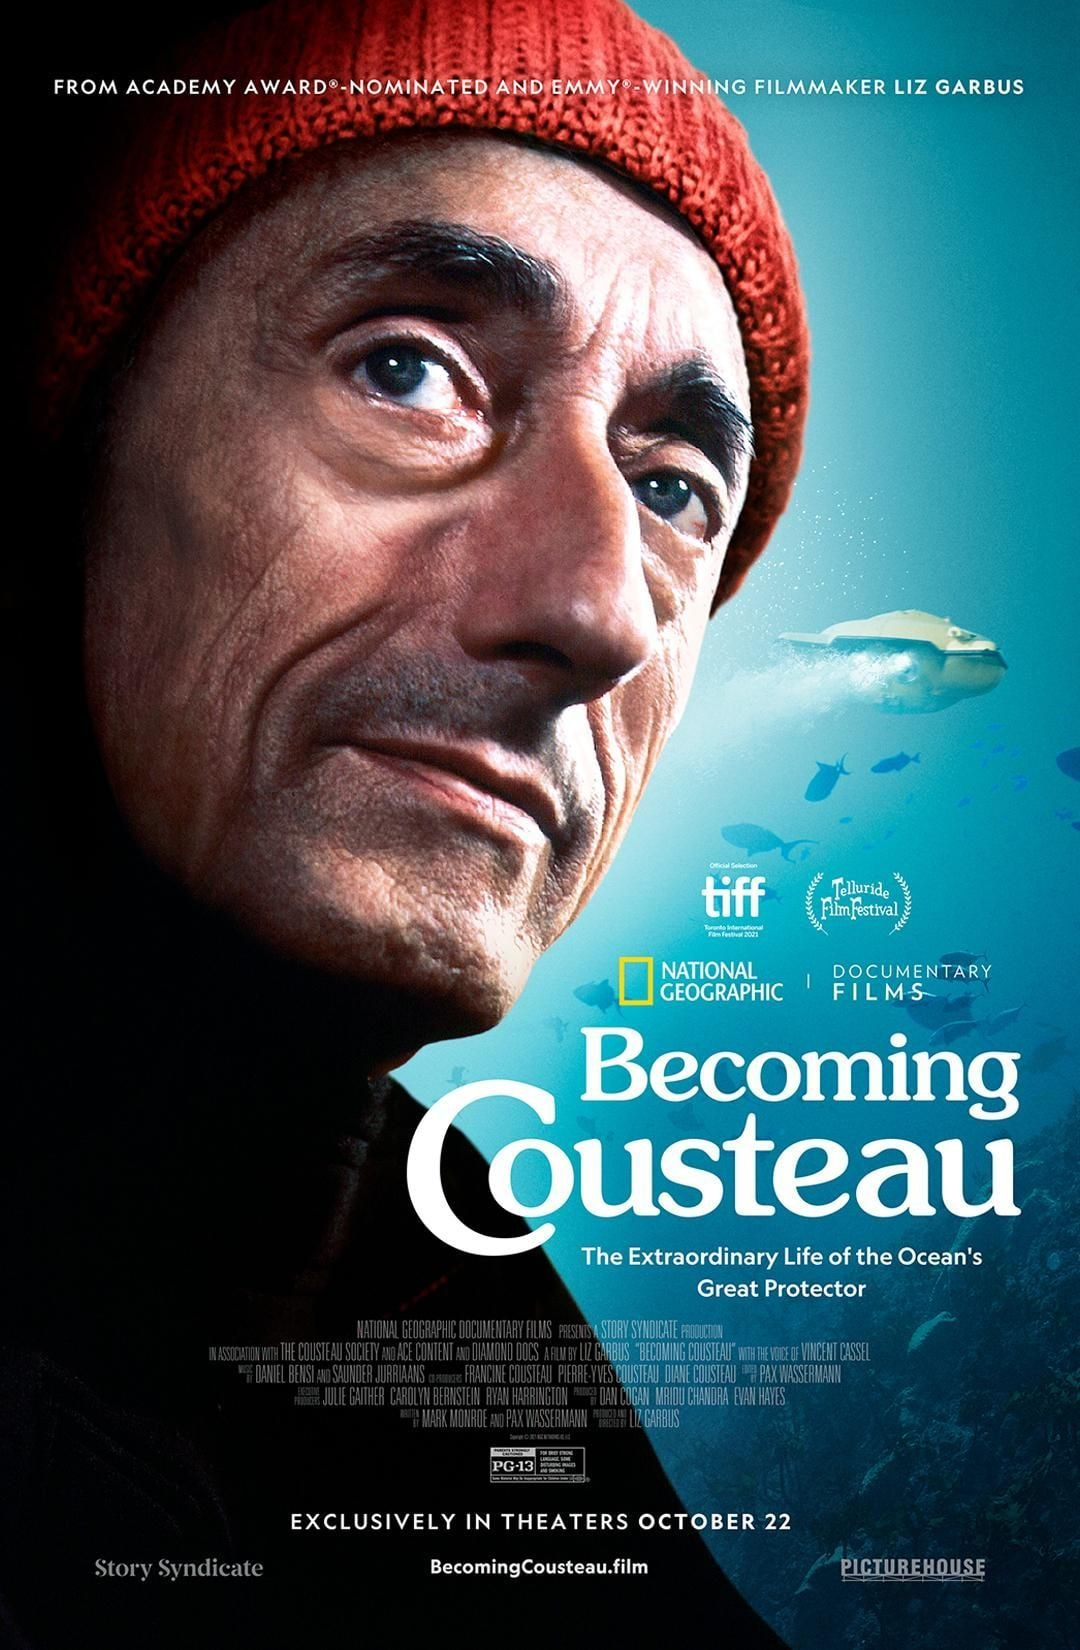 Becoming Cousteau poster art